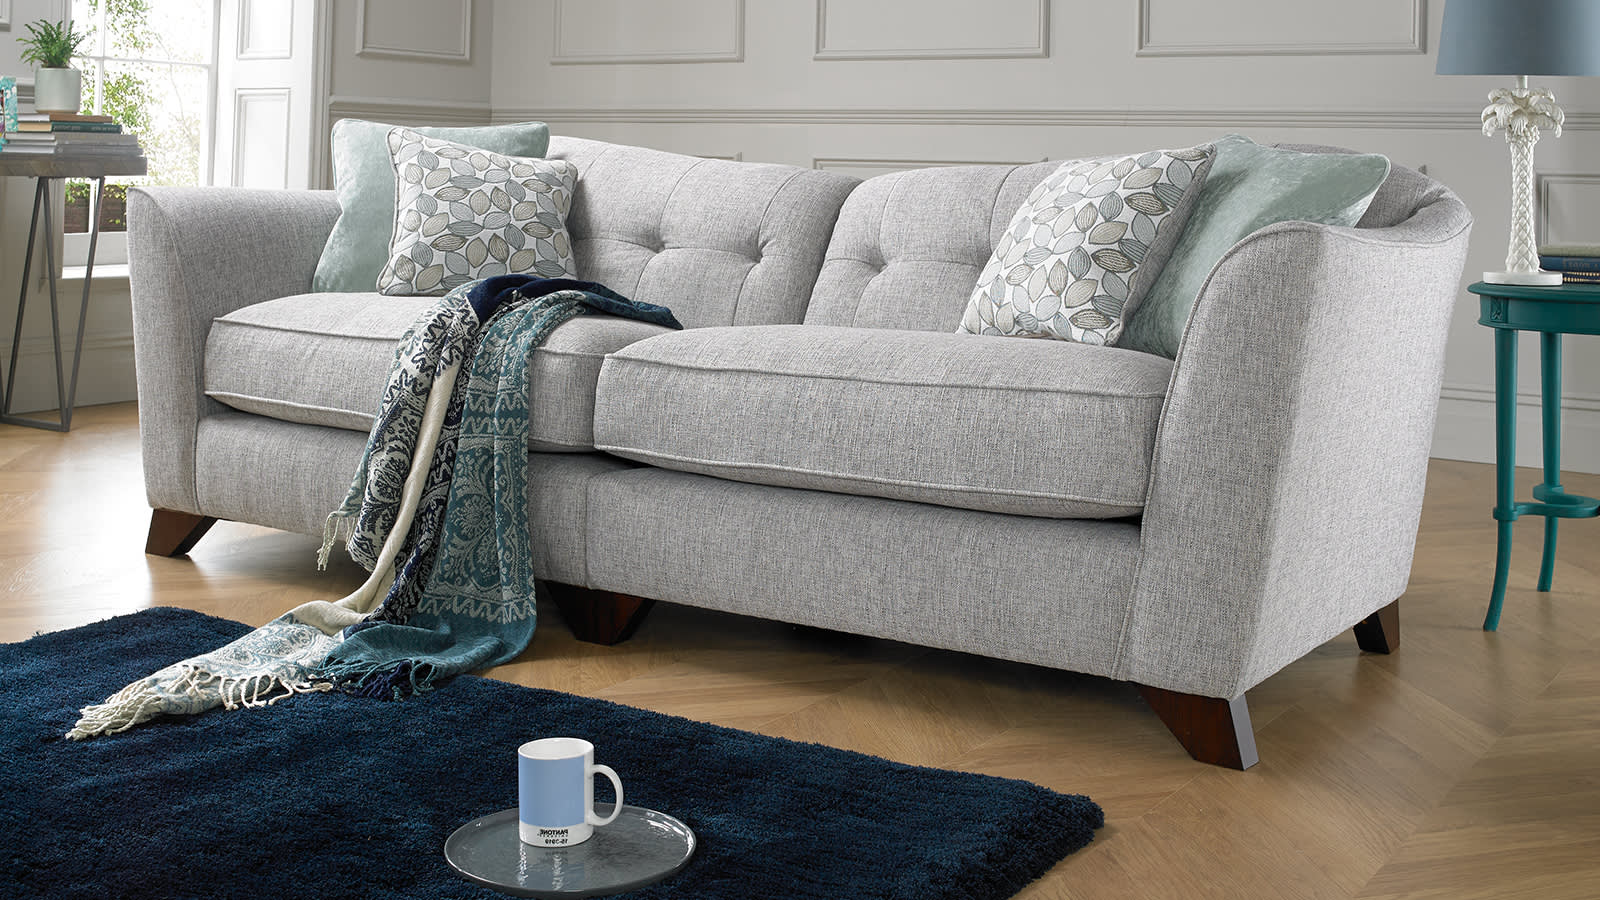 sofas quick delivery uk how to decorate your living room with a red sofa gradschoolfairs